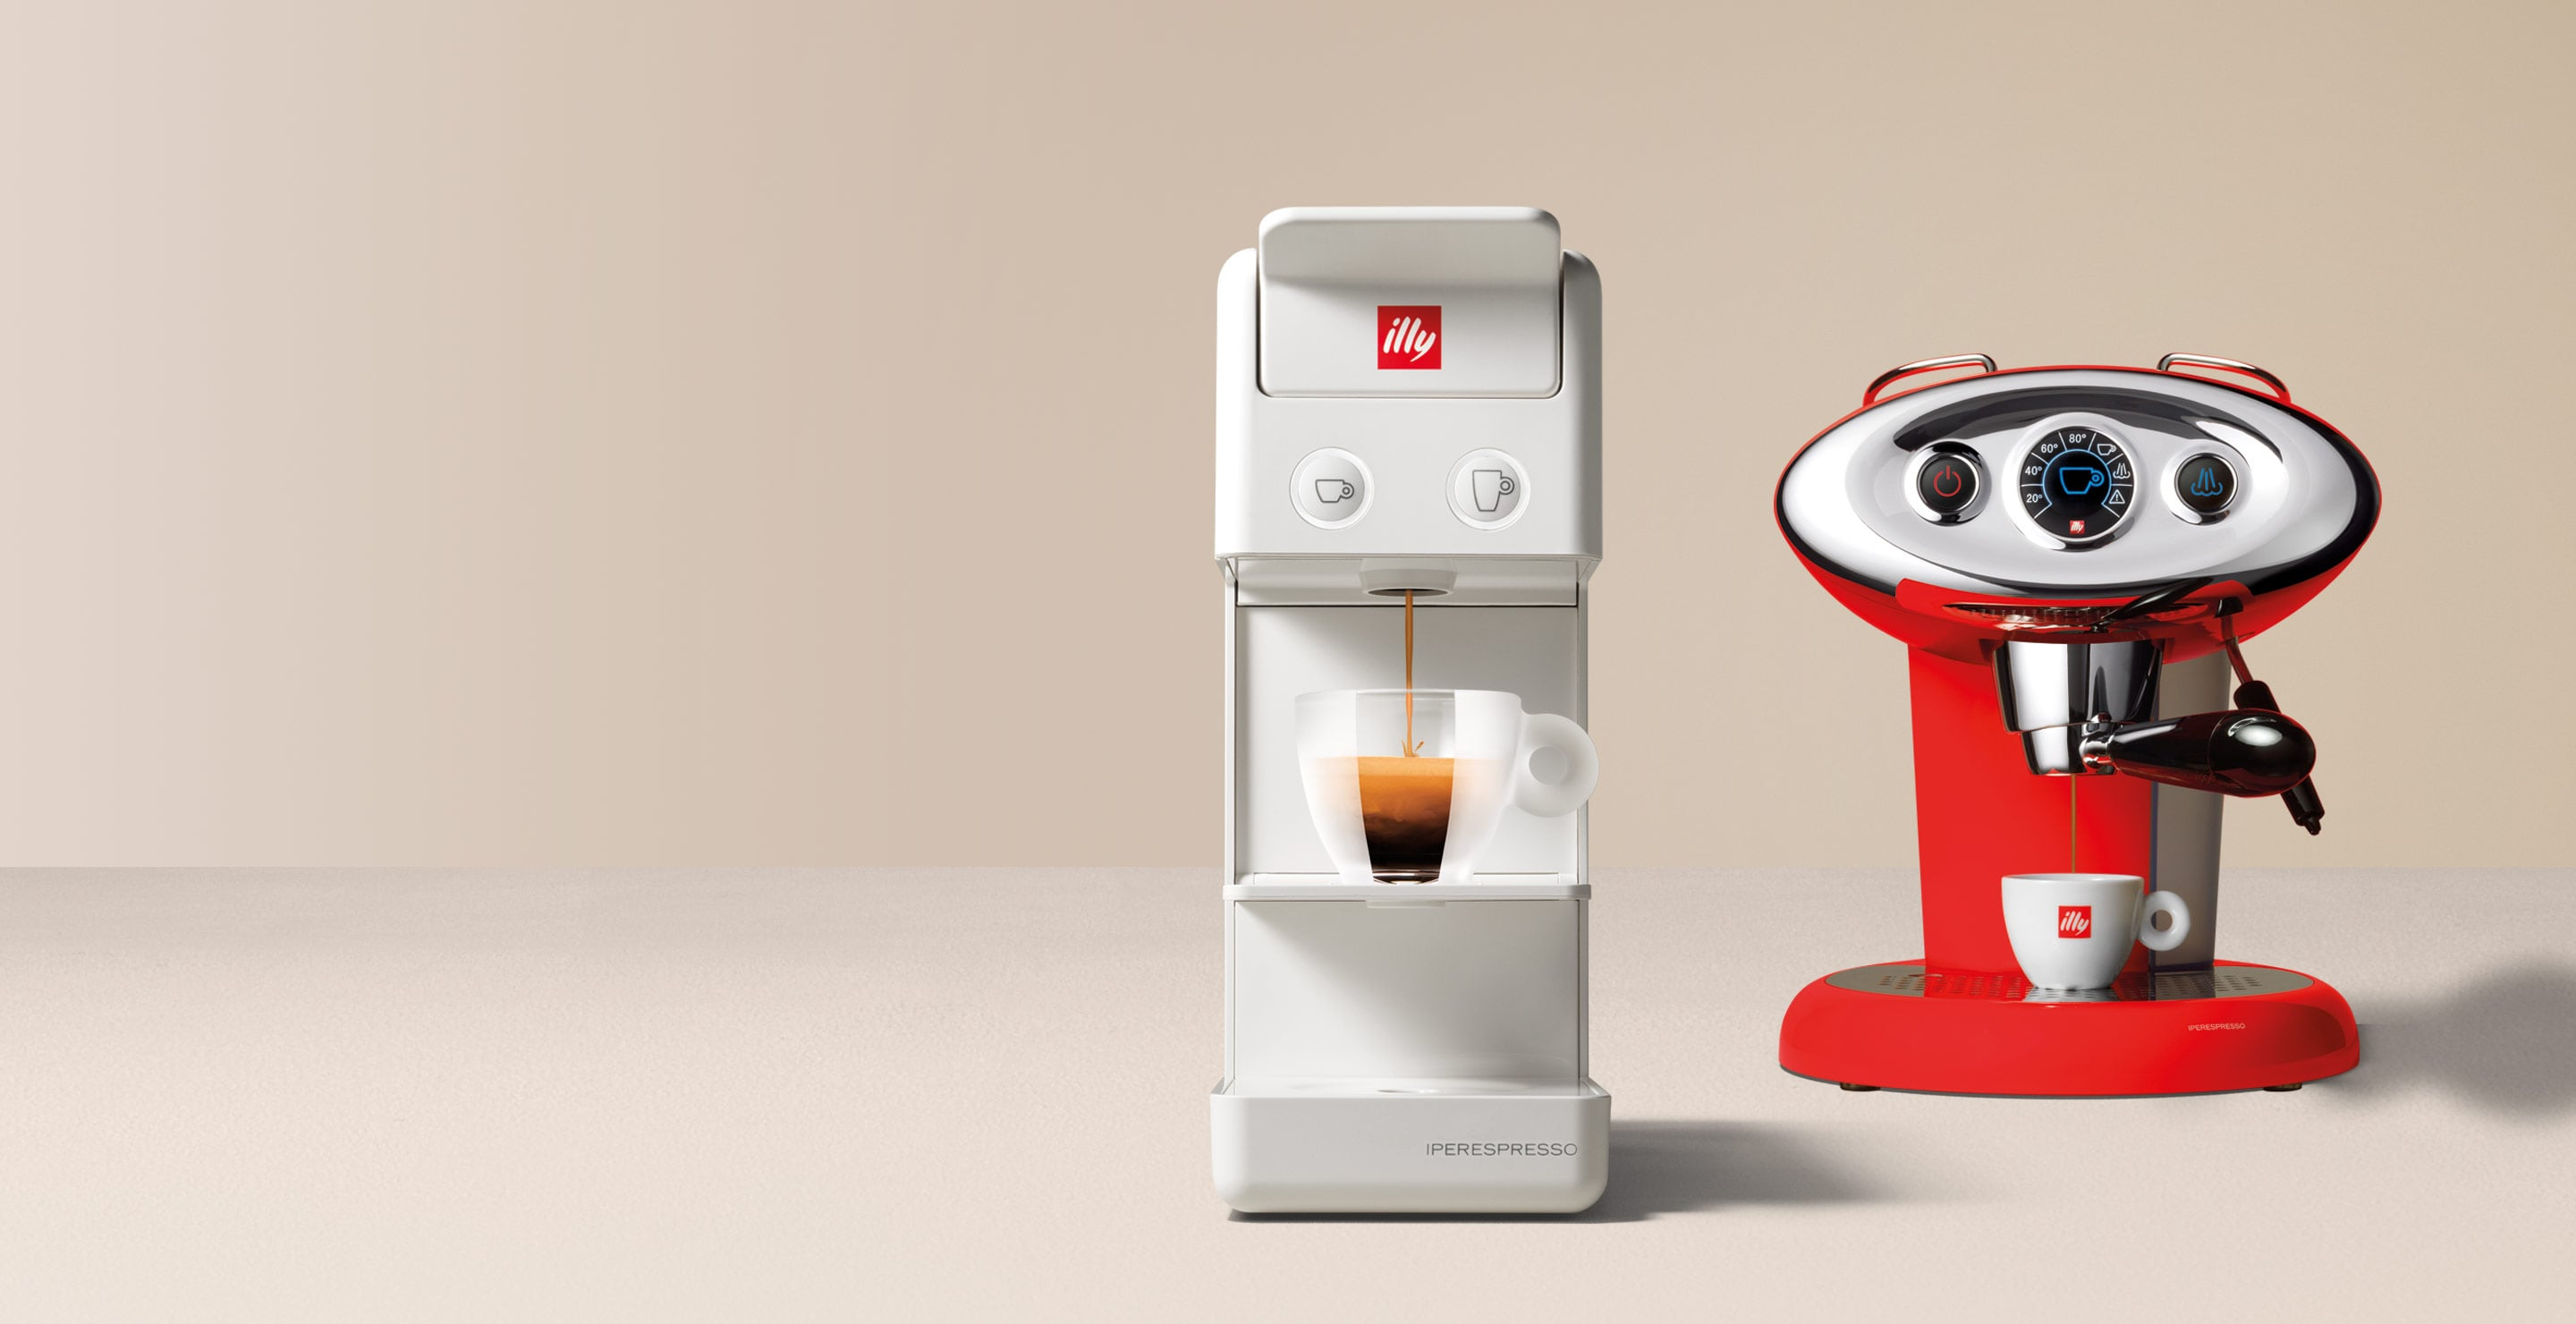 $50 Off iperEspresso machines